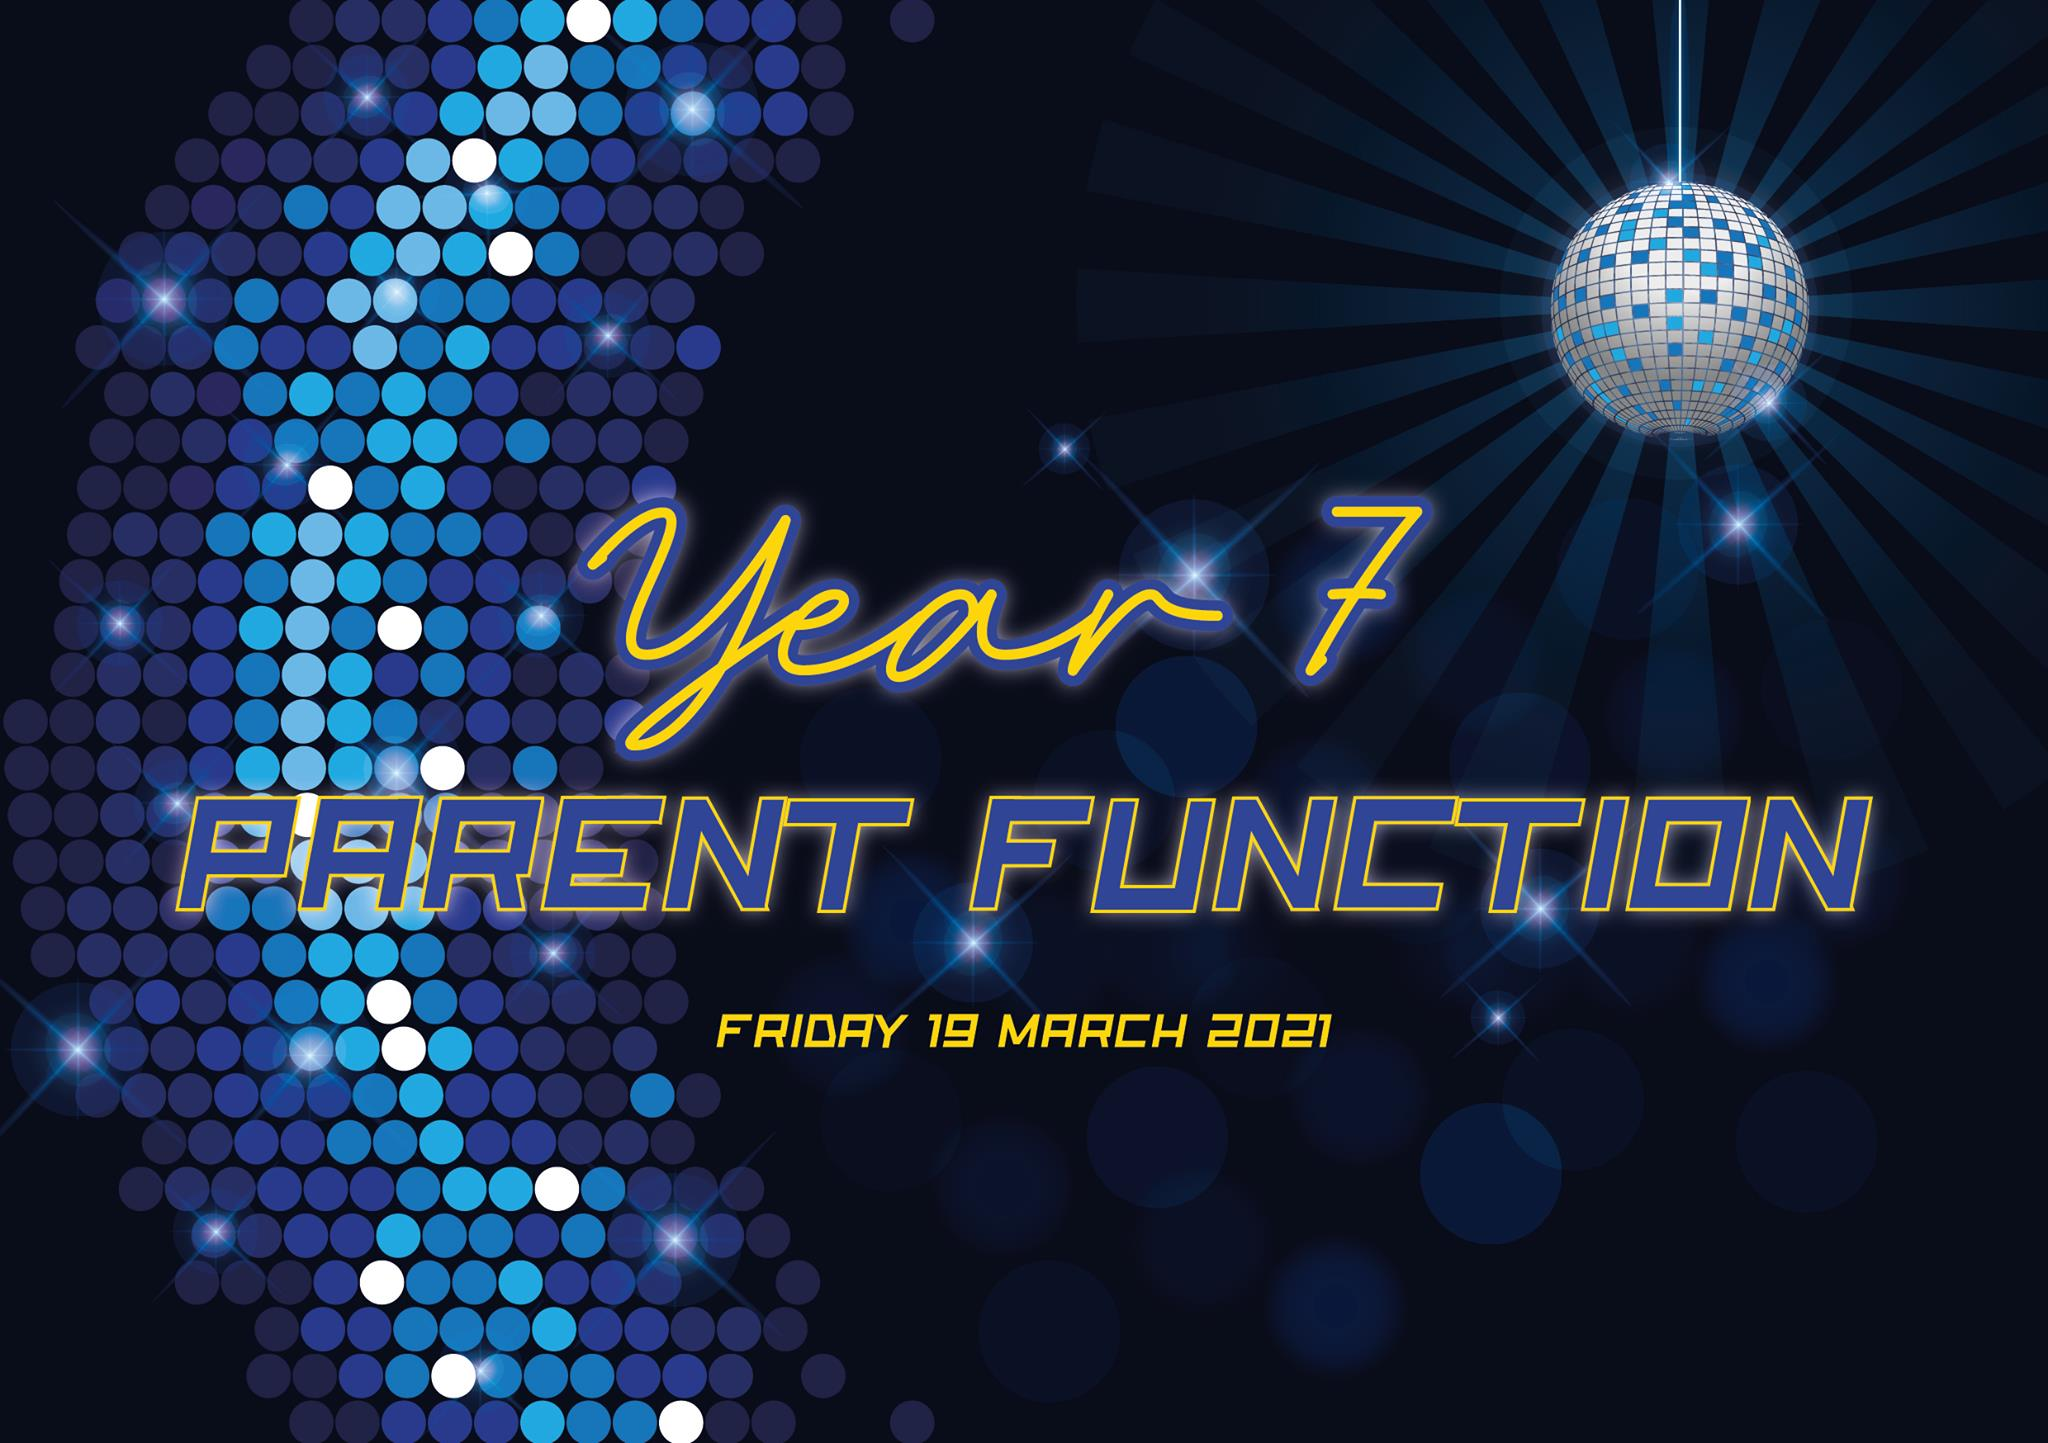 Year 7 Parent Dinner | Friday, 19 March 2021